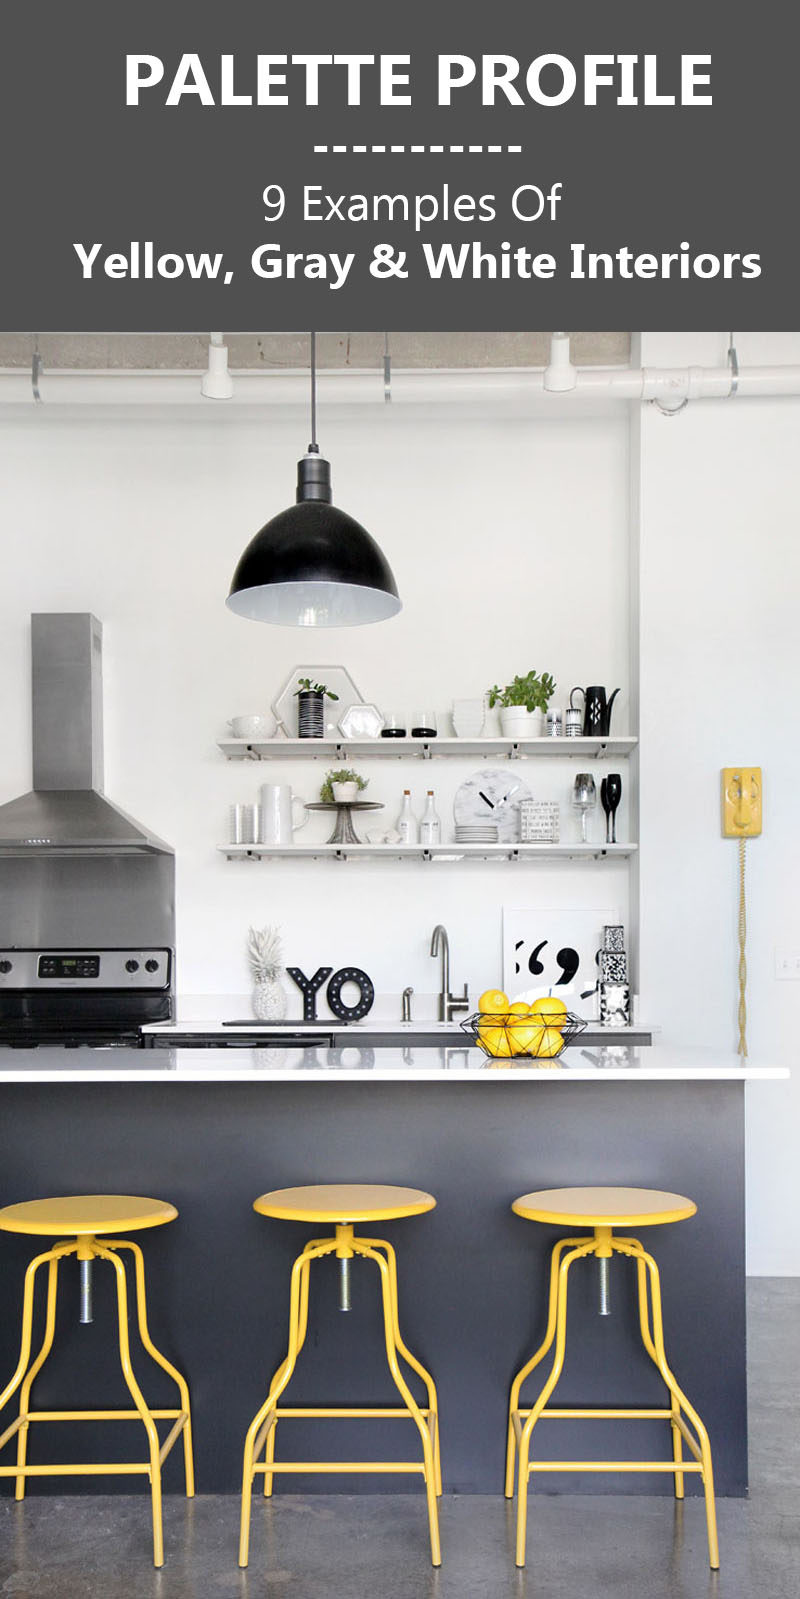 Palette Profile - Yellow, Gray and White Interiors